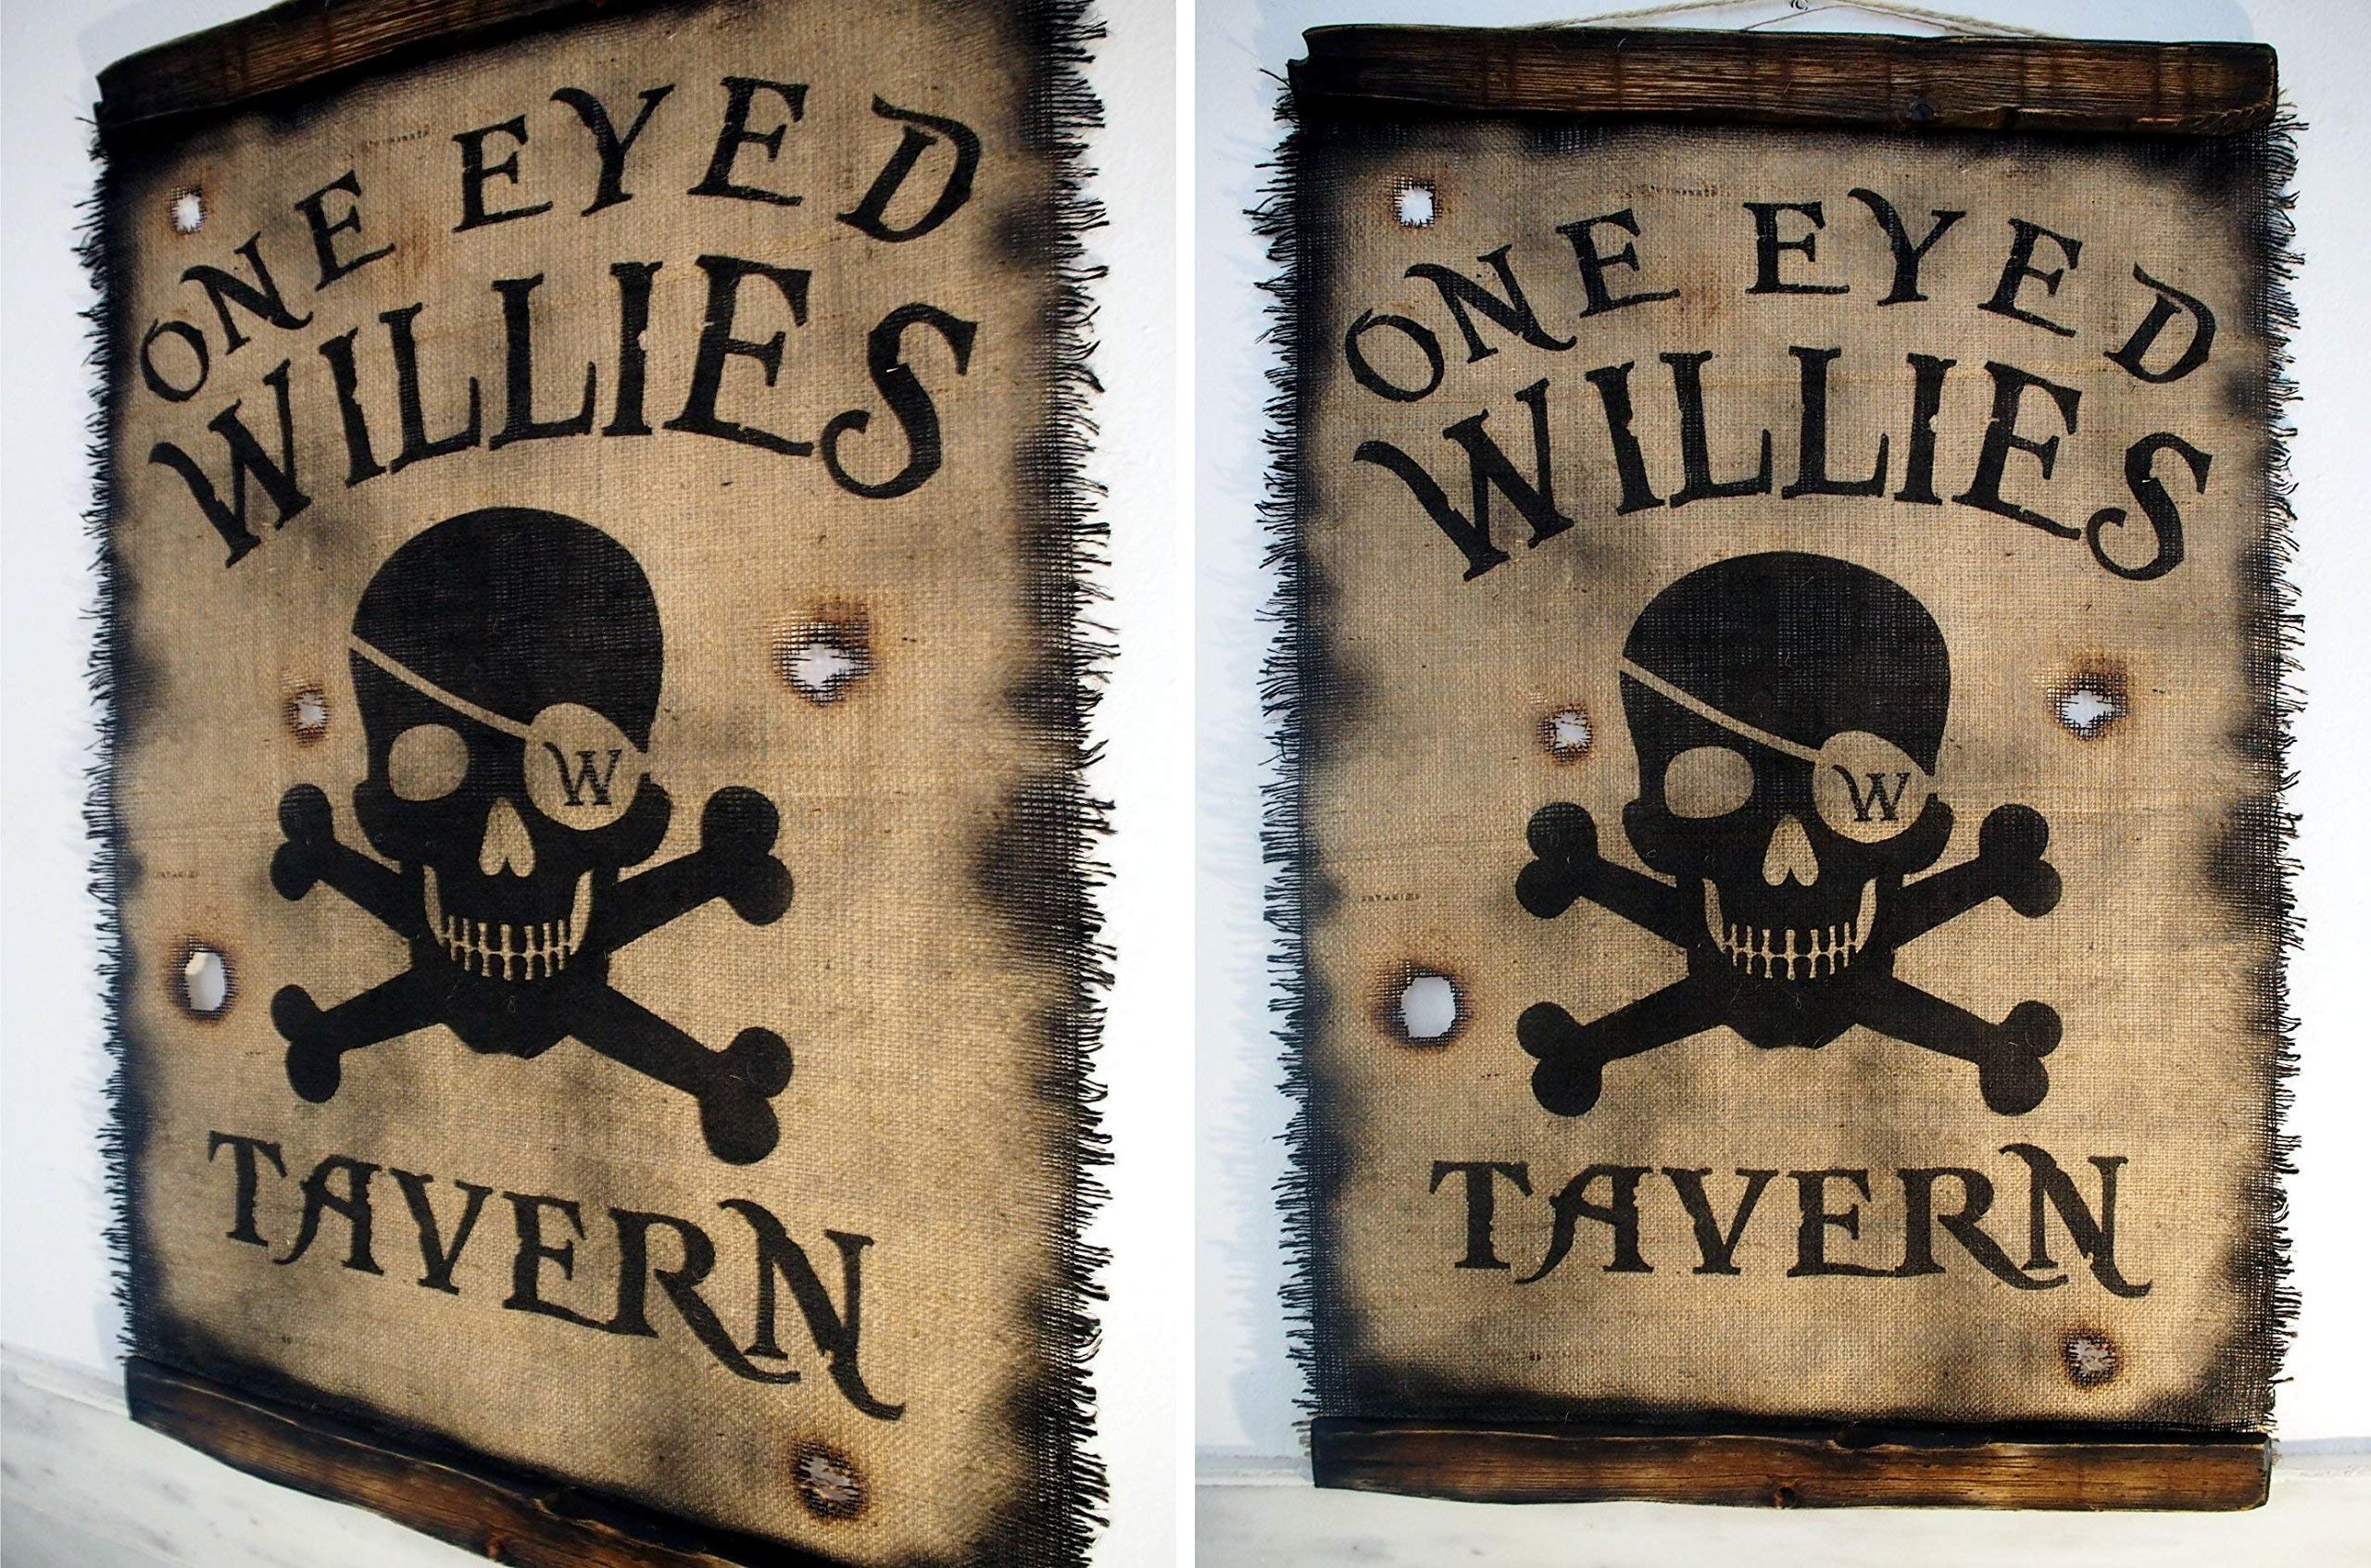 Custom Flag wall decor made of worn out burlap and wood | Rustic Decor | Pirate flag Wall art | Personalized Gift | Man Cave, Home Bar, Boys Room by Woodcraft City (Image #3)